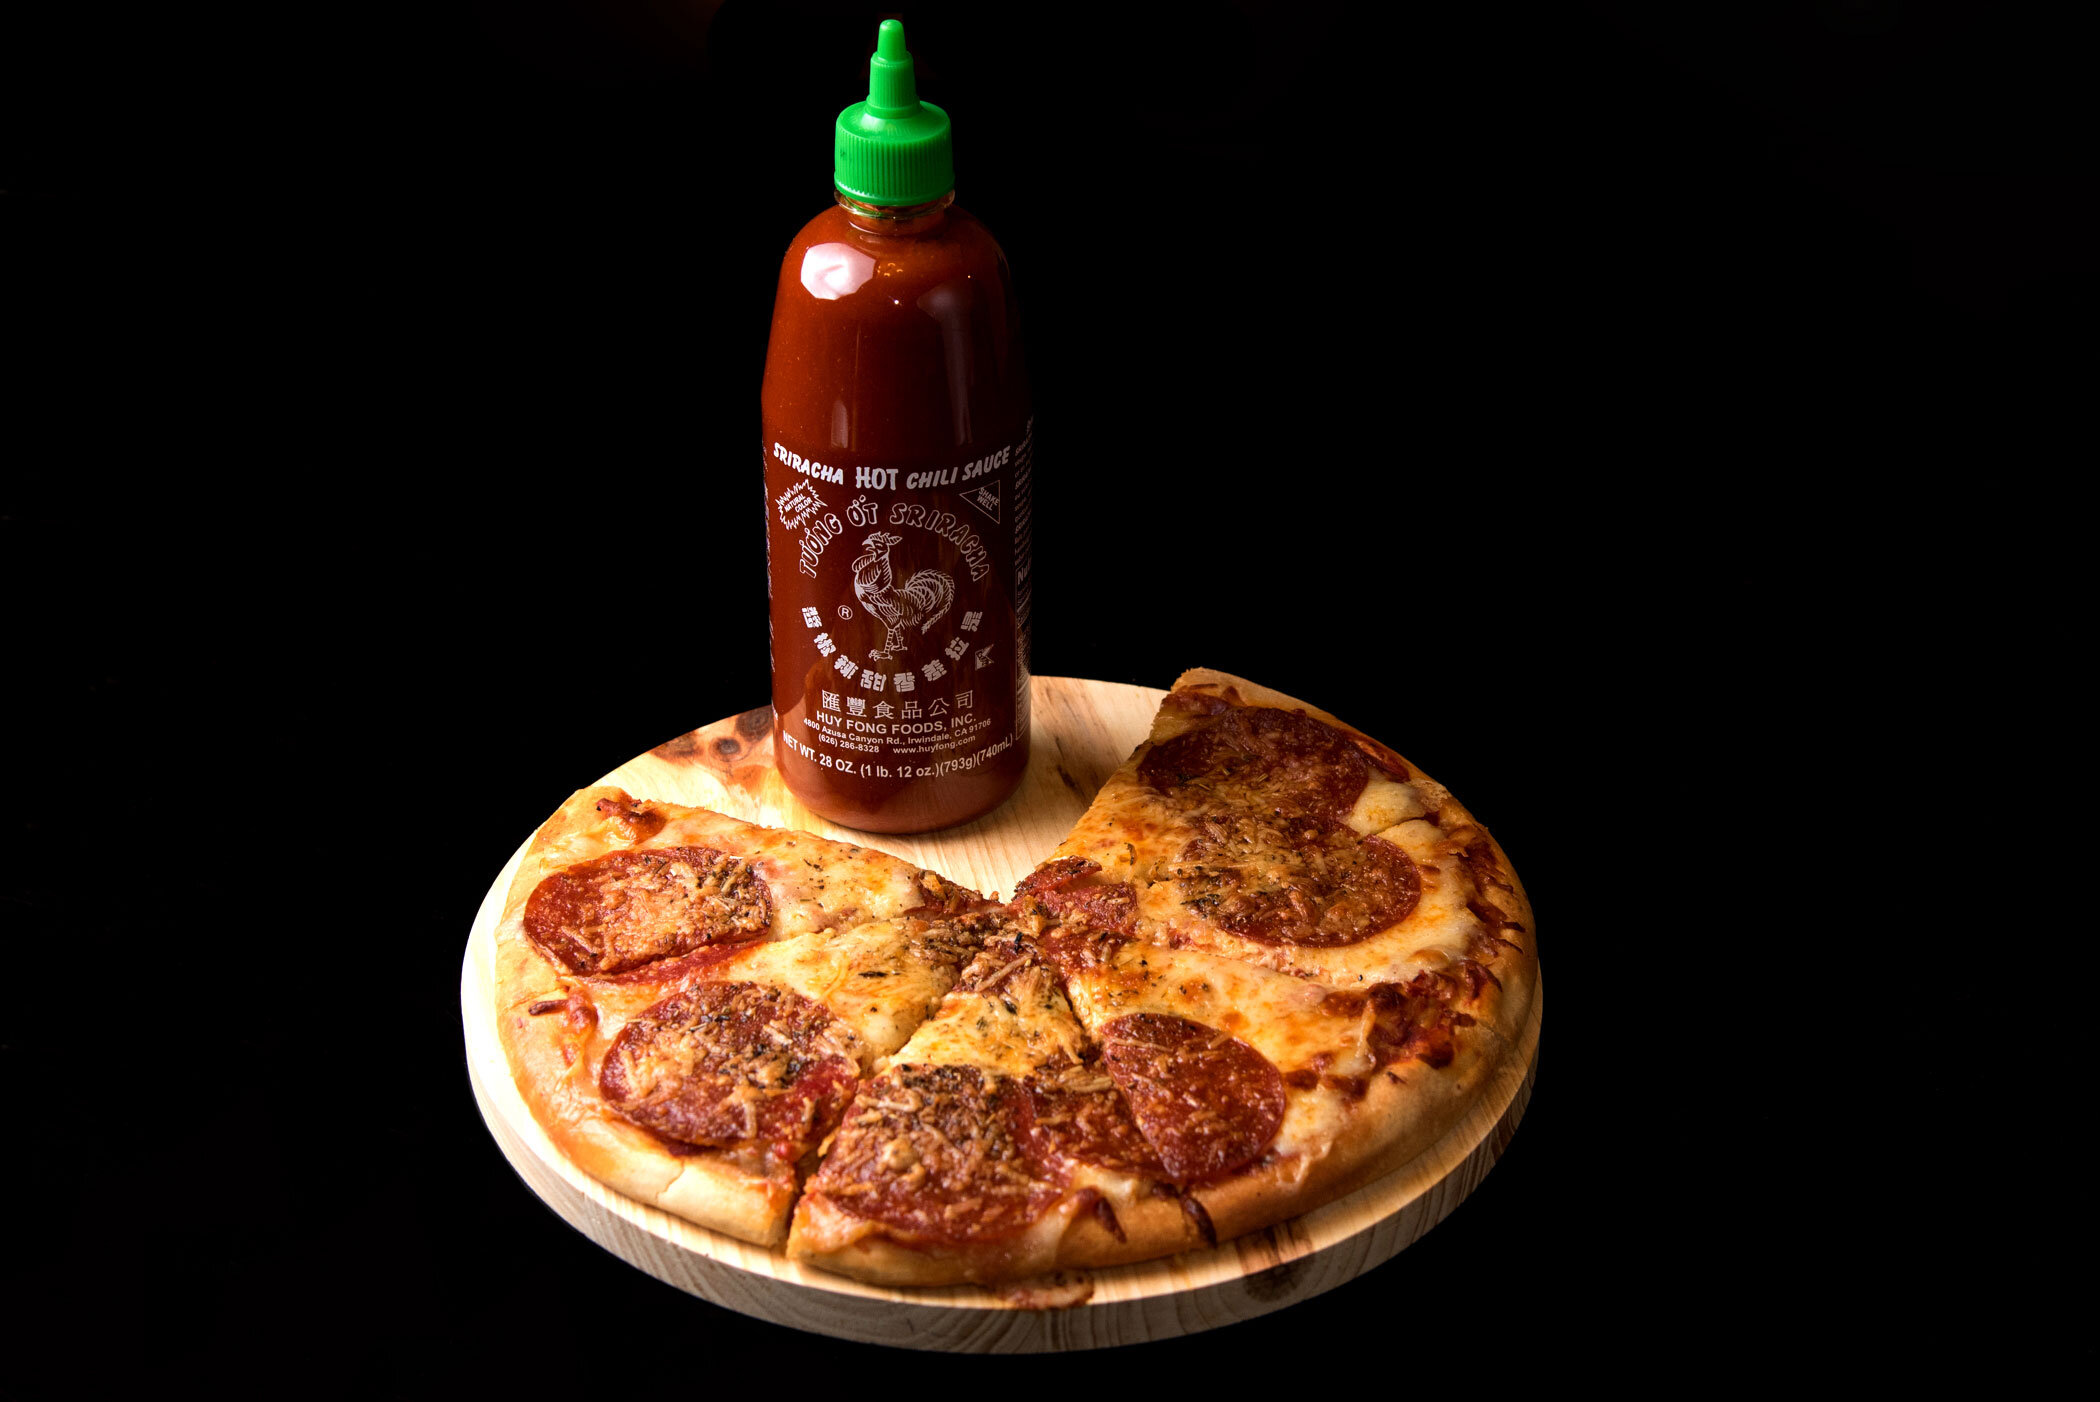 """""""It's just me and la cucaracha tonight, Cold pizza with hot sriracha"""" - Chance The Rapper, """"I Am Very Very Lonely"""""""